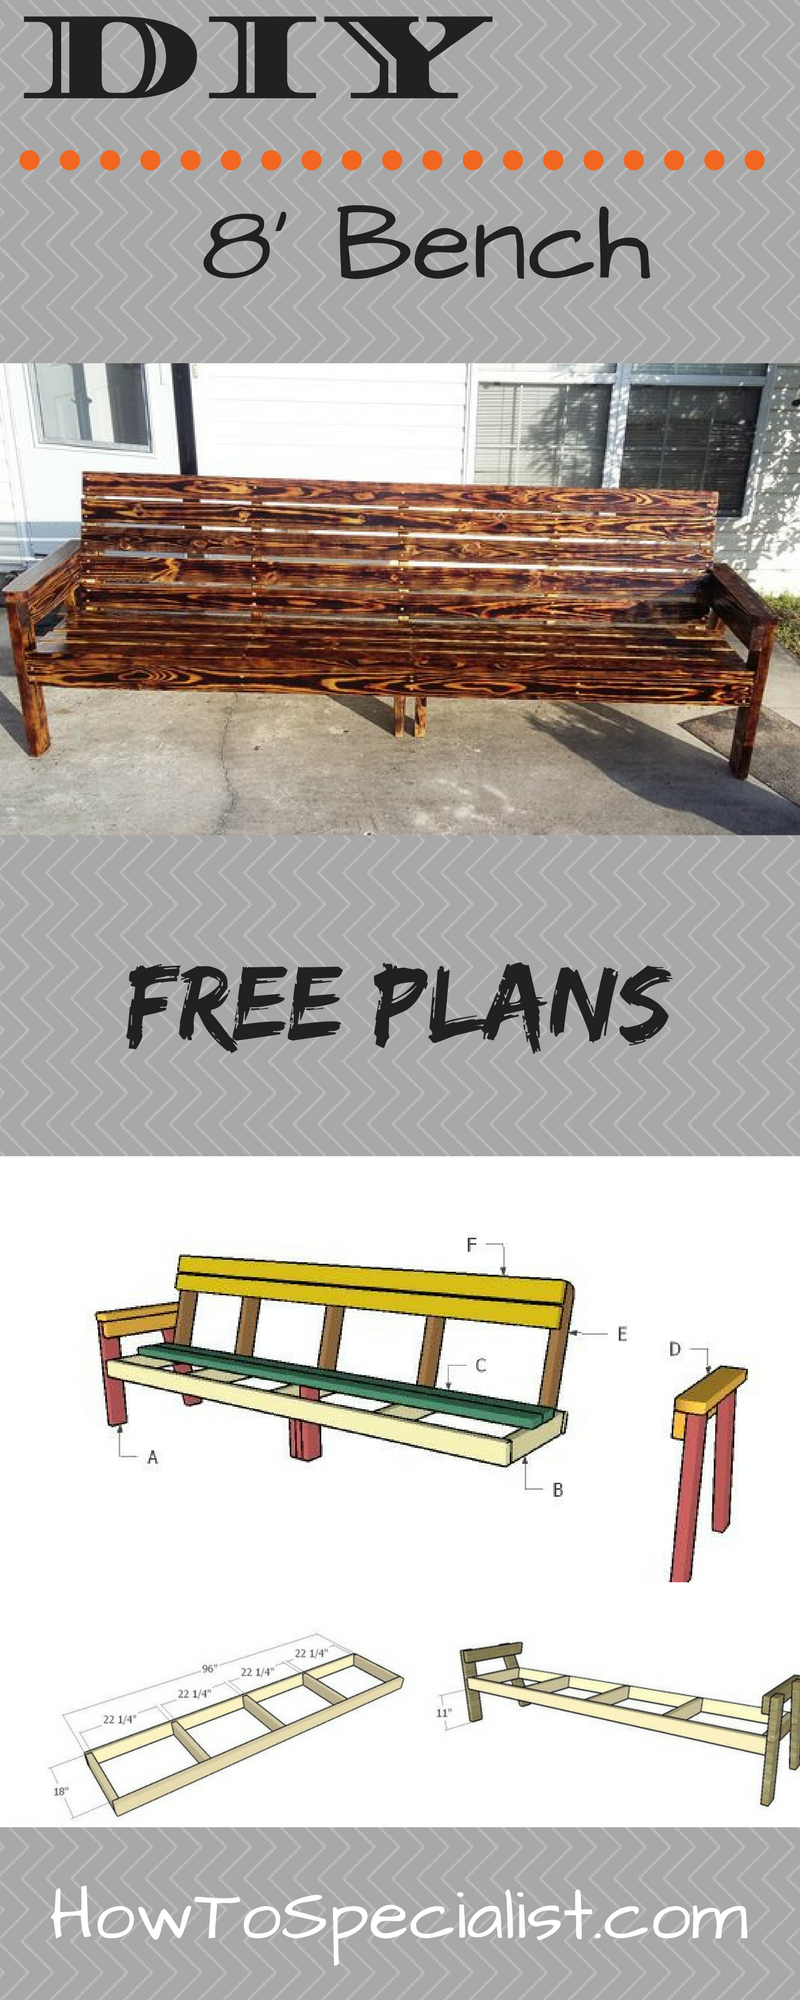 8 ft Bench Plans | DIY Plans | Bench plans, Pallet furniture plans  Foot Bench on heavy duty bench, 9 ft bench, square bench, portable bench, electronic bench, 6 foot bench, work bench, 8 ft storage bench, kitchen bench, 5 foot bench, glass bench, 36 inch bench, outdoor wooden memorial bench, aluminum bench,